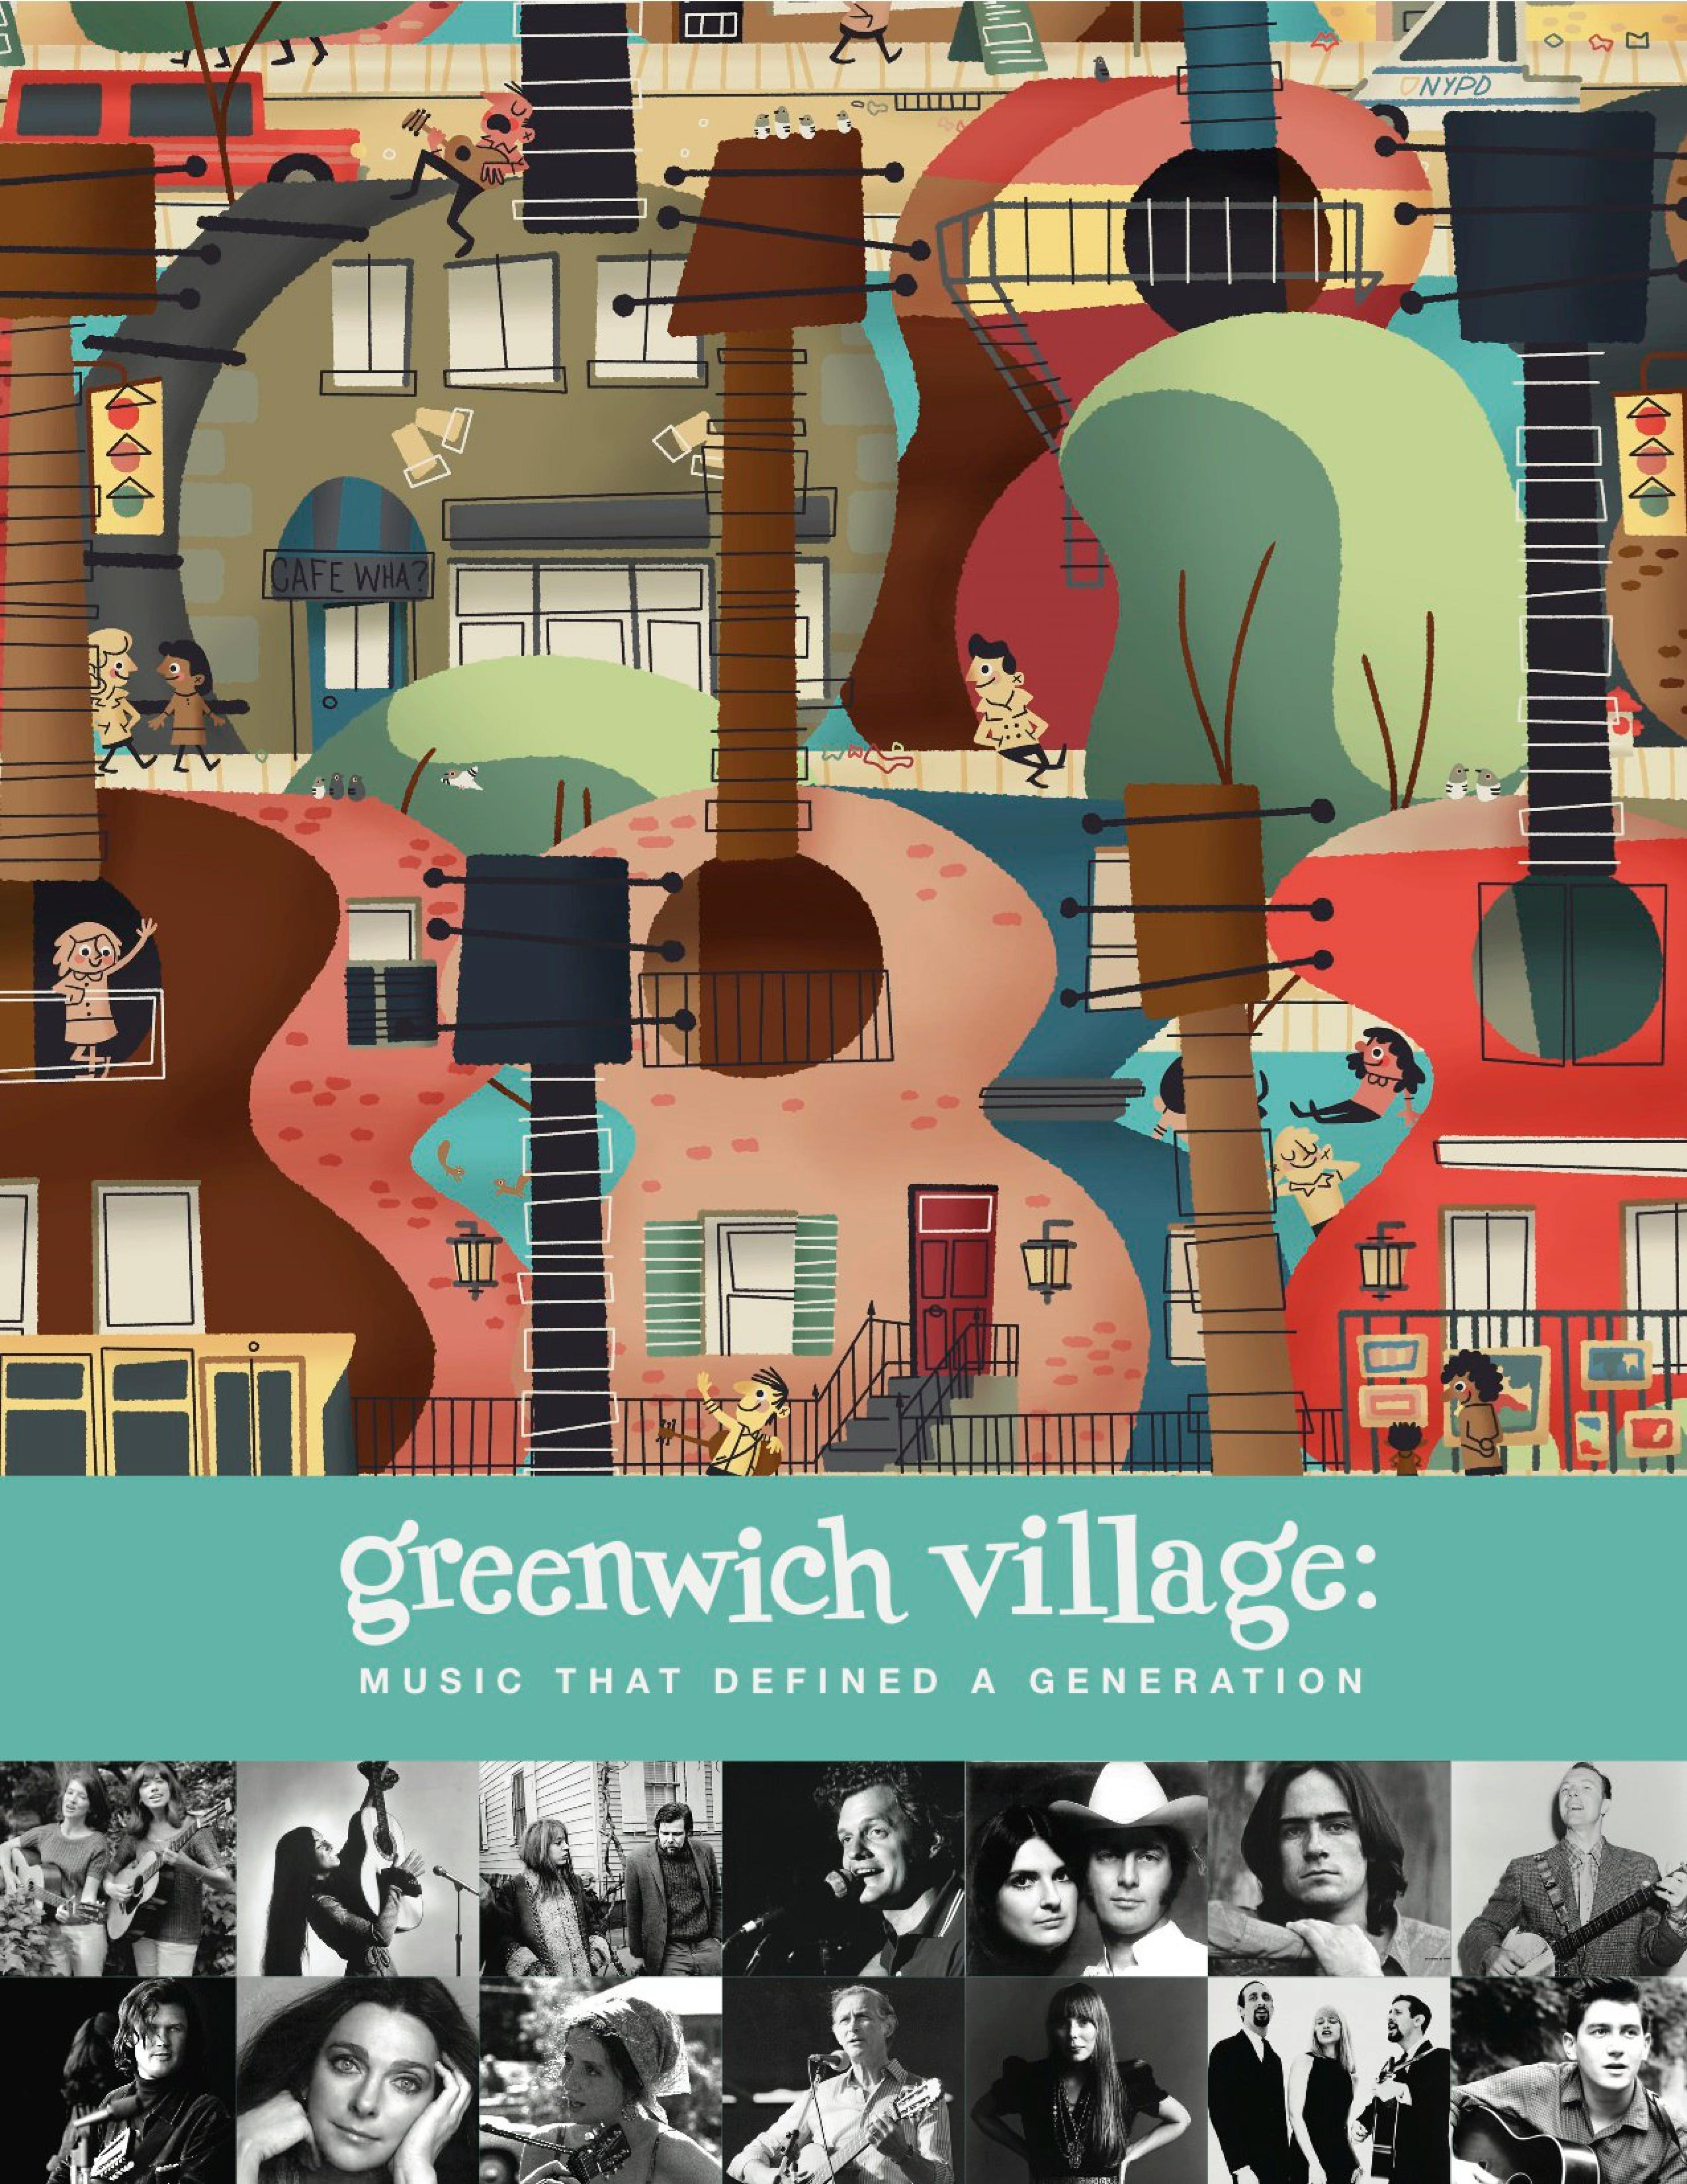 publicity image for First Friday Films: 'Greenwich Village'